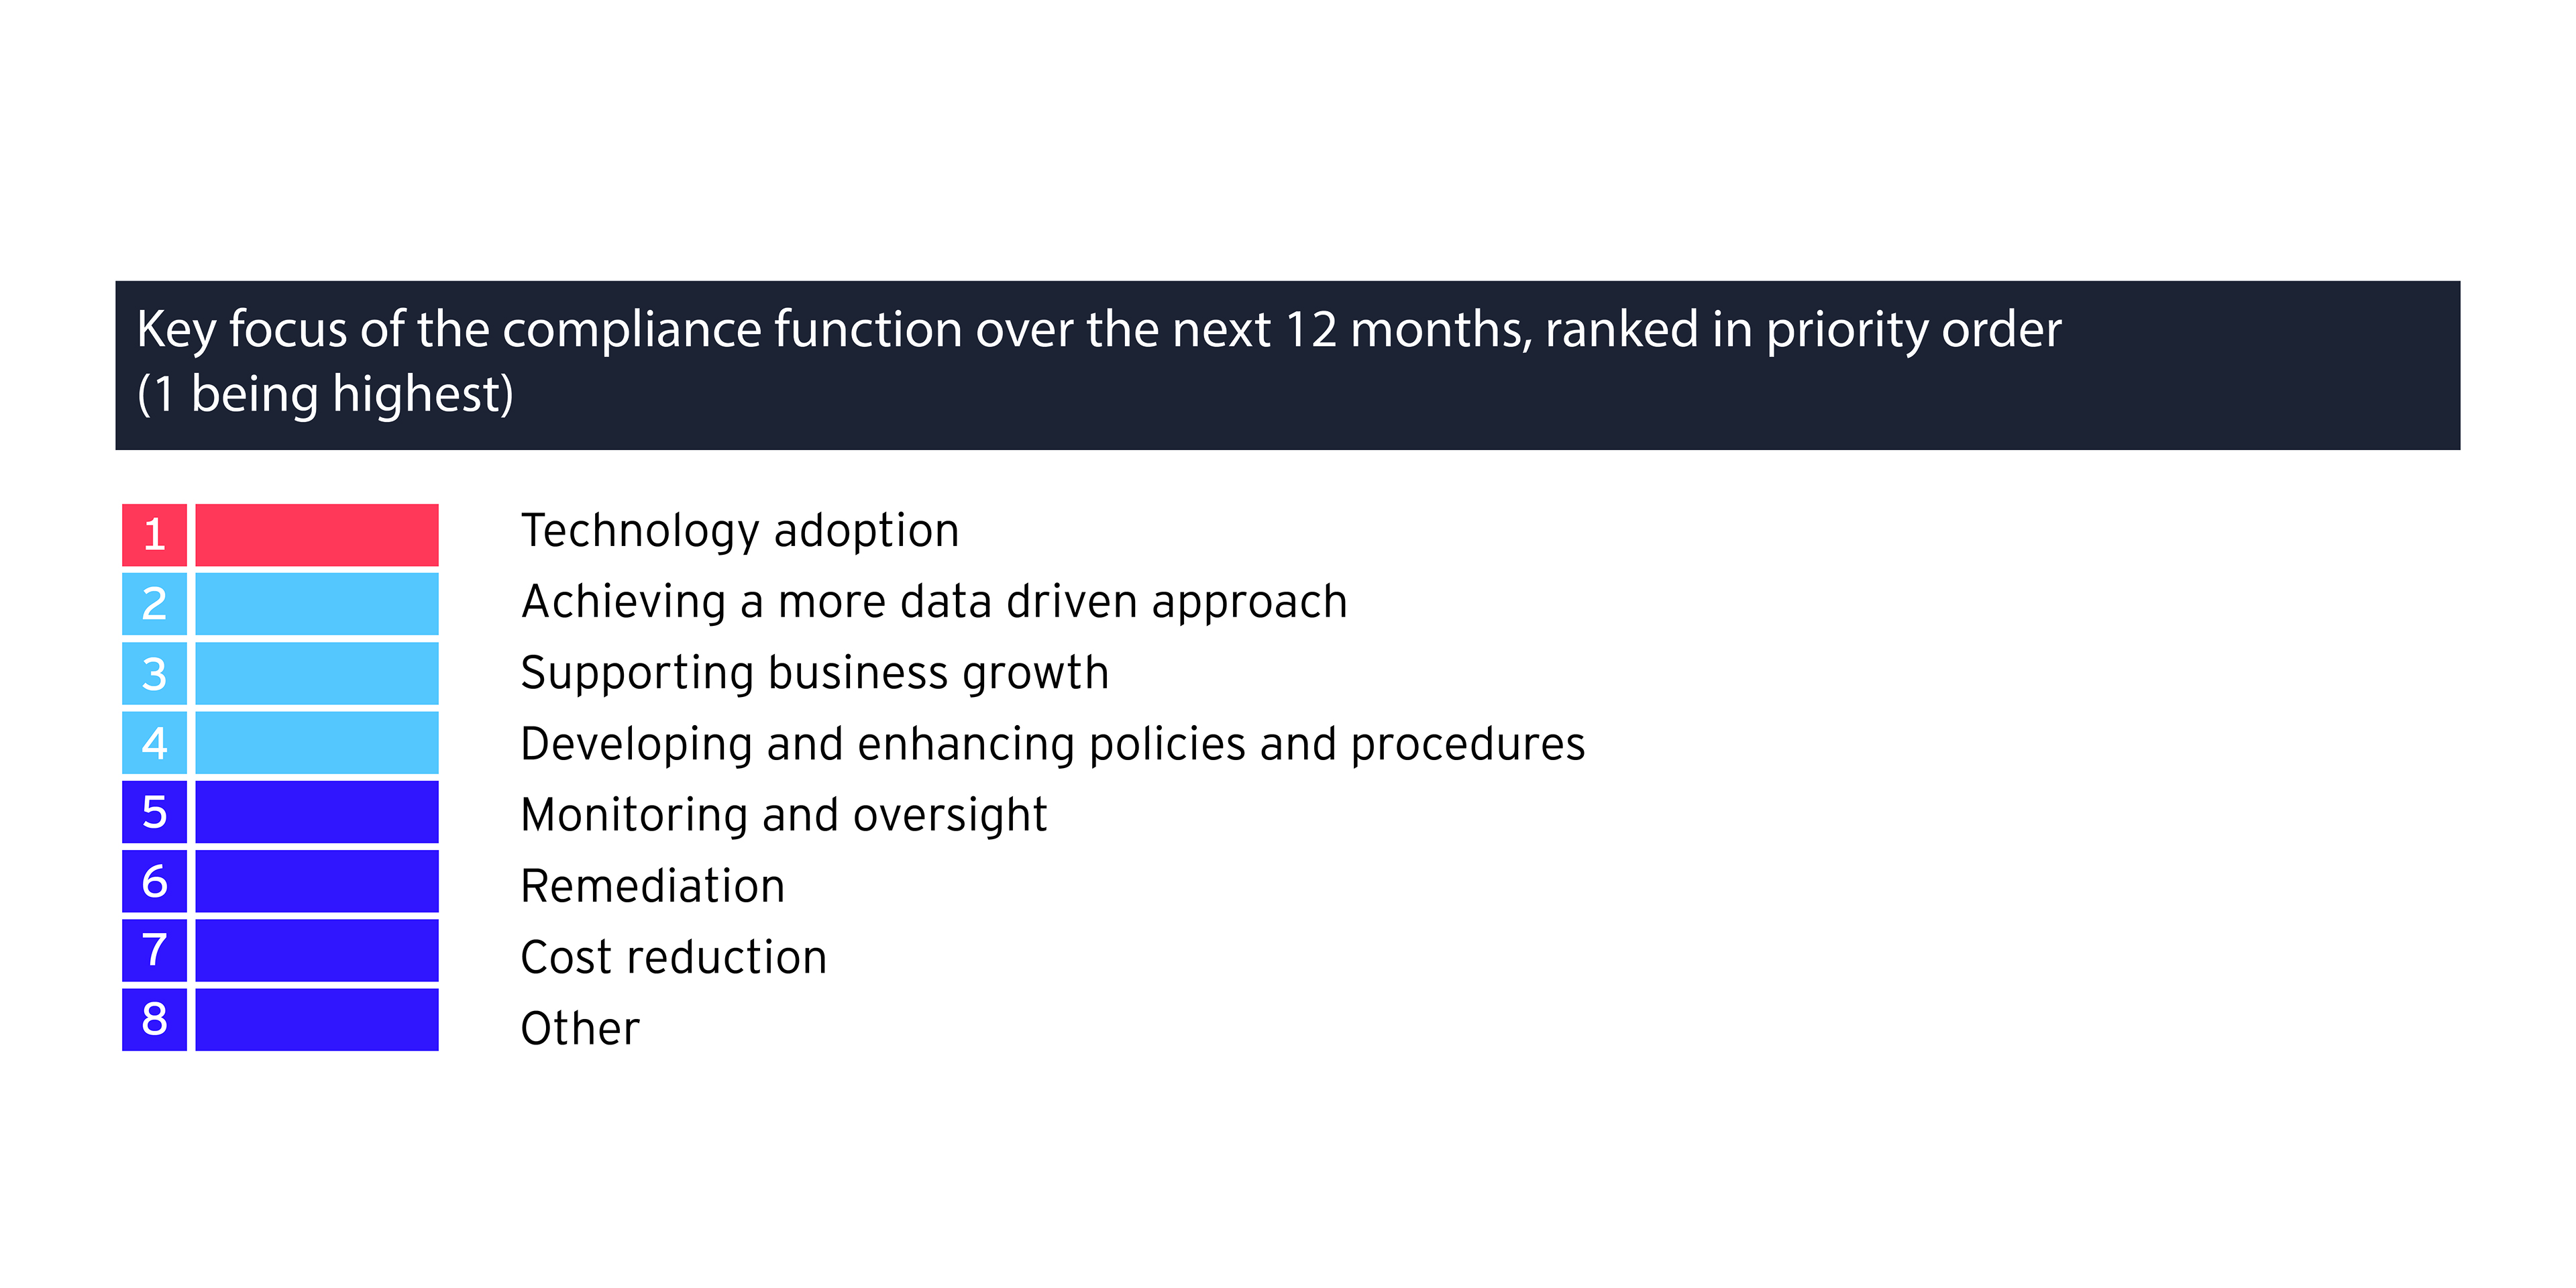 Key focus of the compliance function over the next 12 months